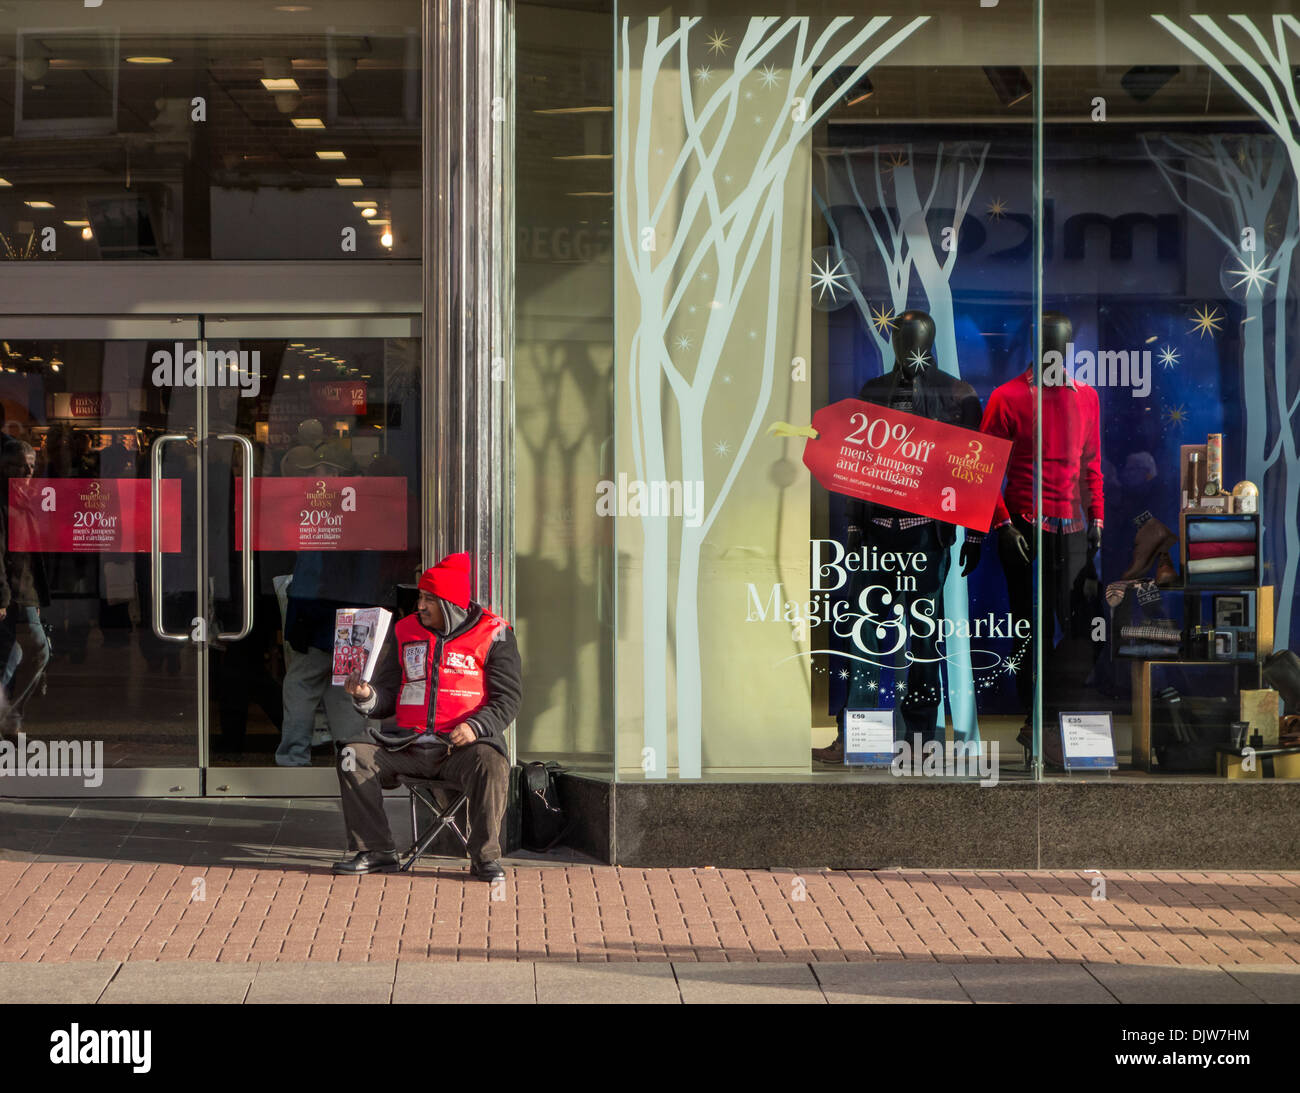 Big issue seller outside a department store.Optimistic, pessimistic. - Stock Image